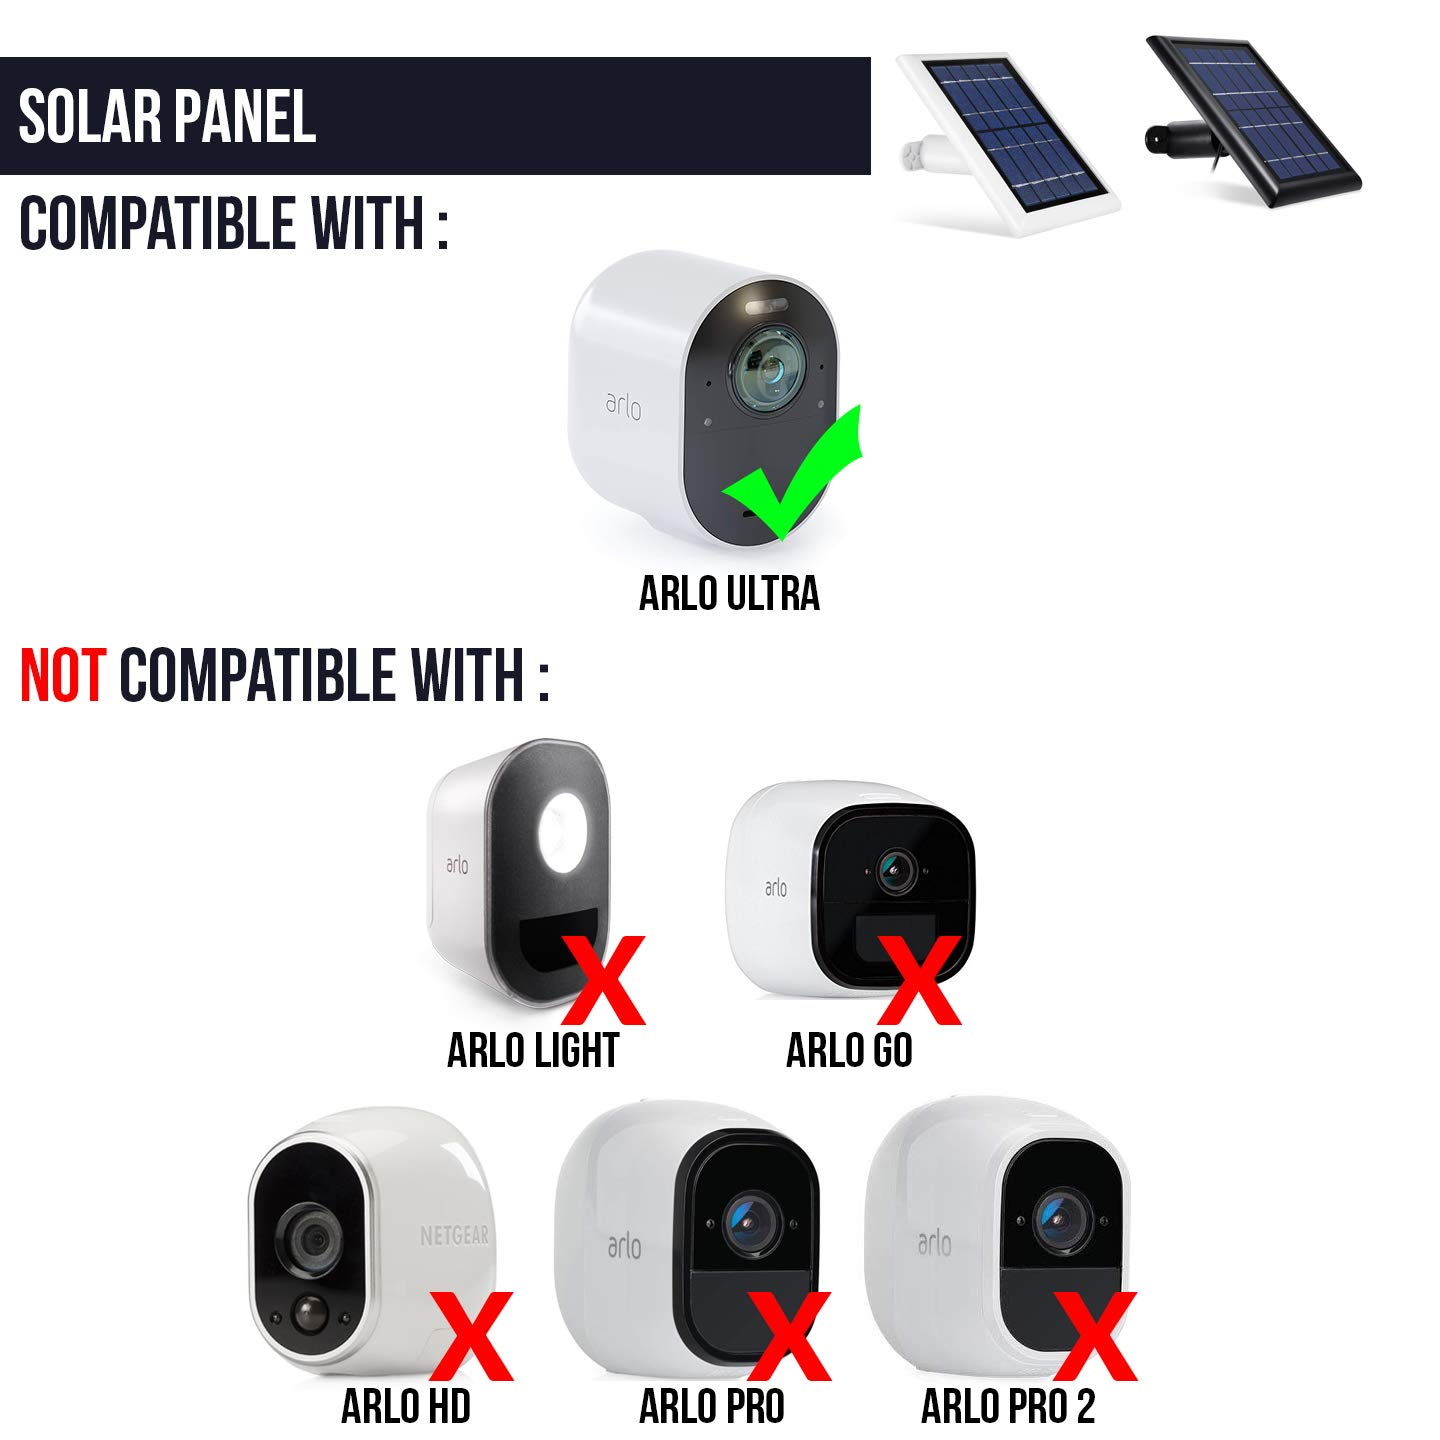 Solar Panel Compatible with Arlo Ultra - Power Your Arlo Surveillance Camera continuously (Black) by Wasserstein (Image #7)